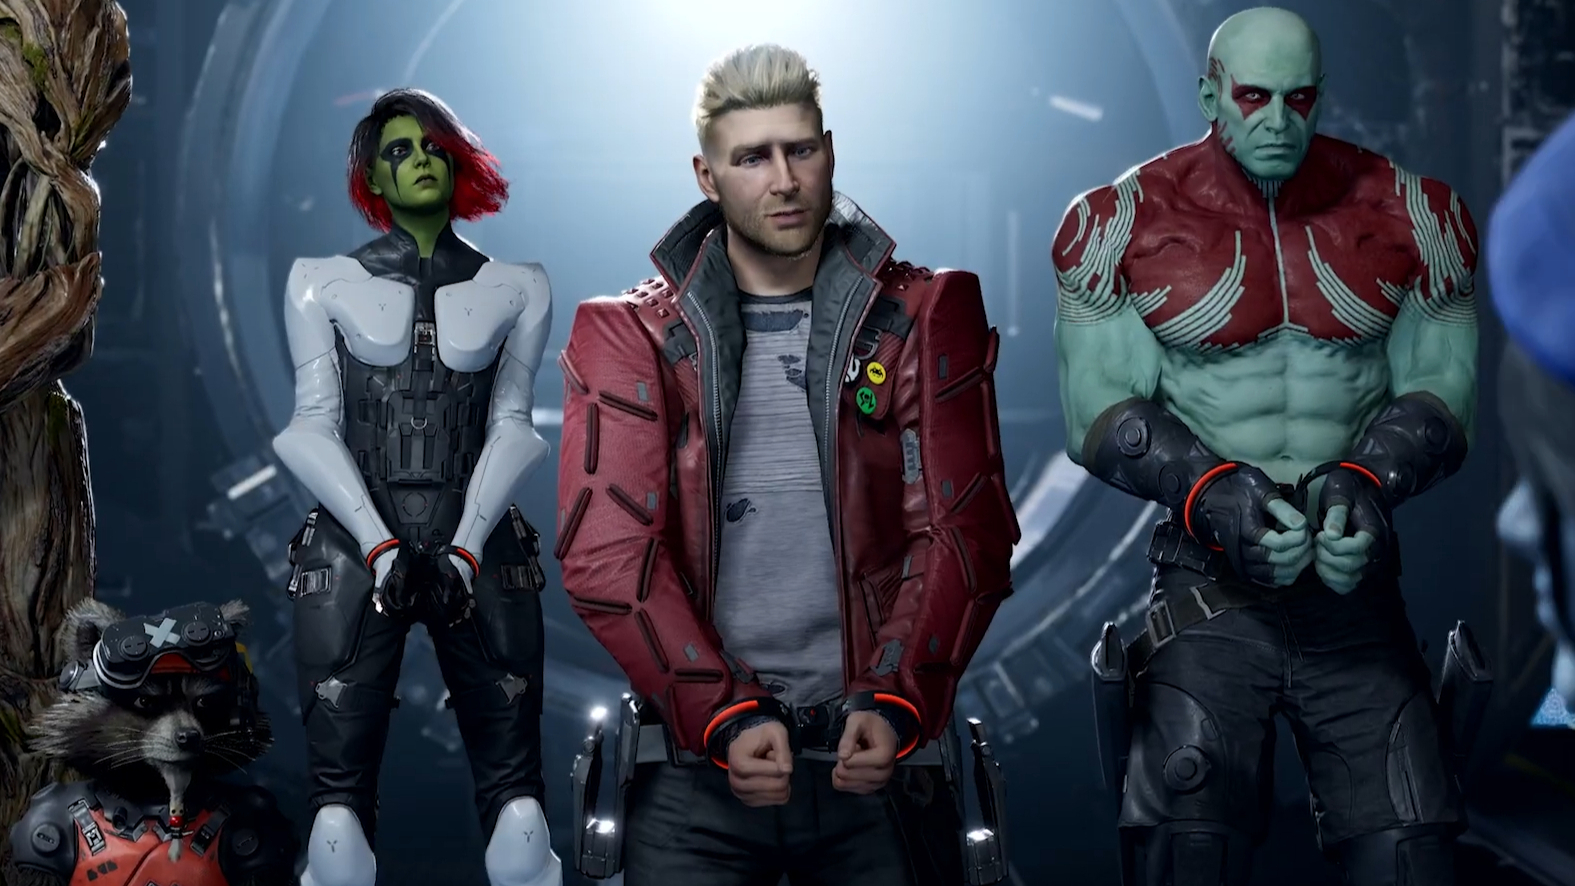 Review: Guardians of the Galaxy is the space hero game you're looking for